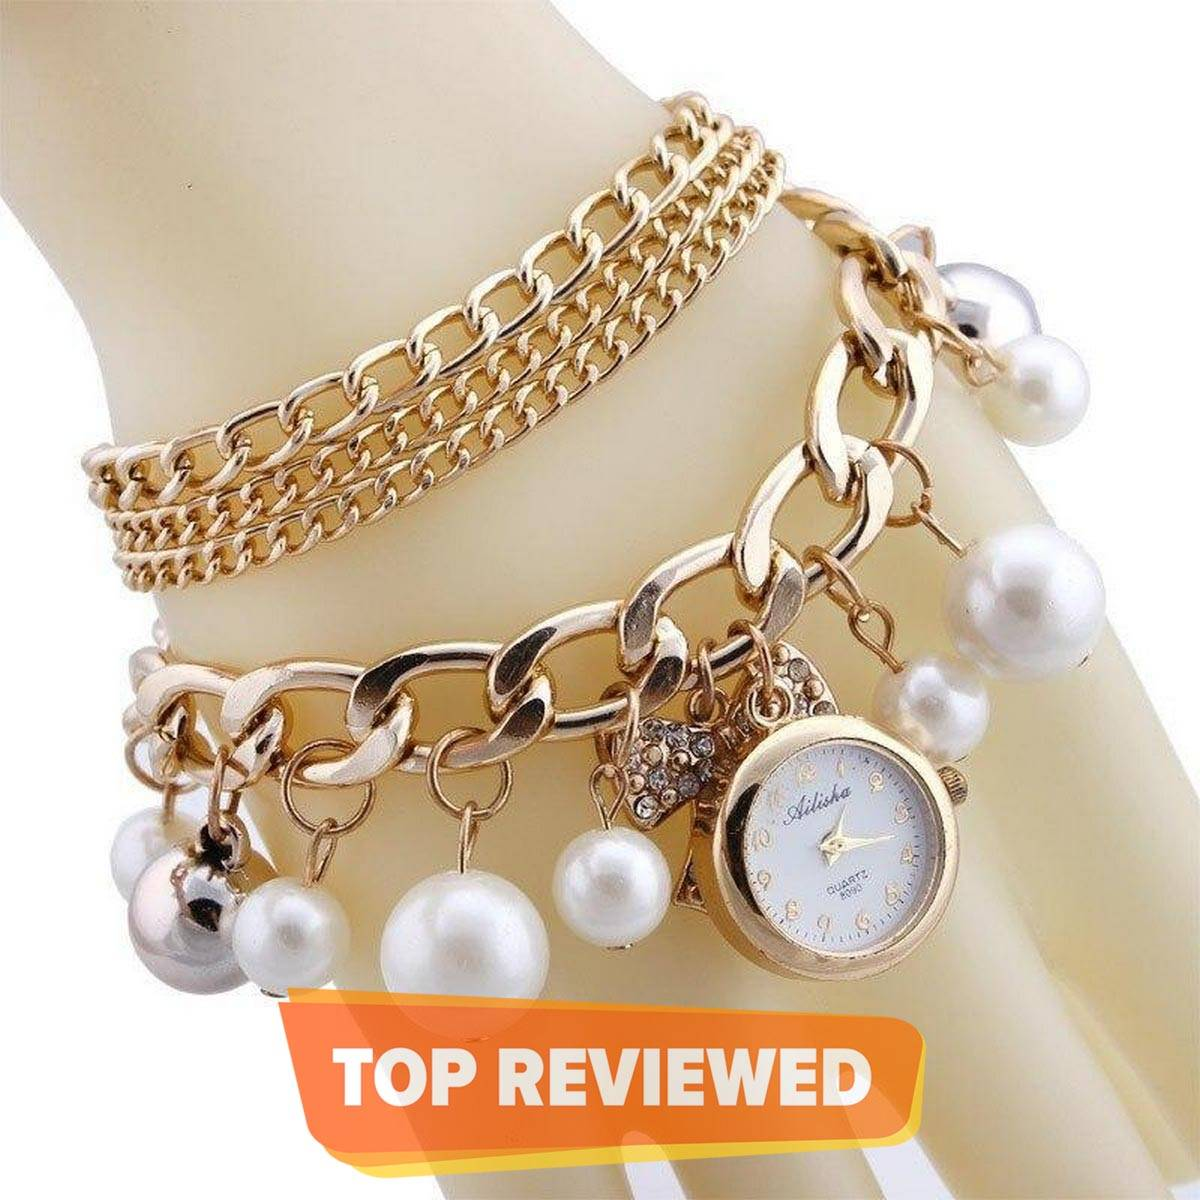 Golden Watch Pearls Bracelet and Ladies Watches For Girls